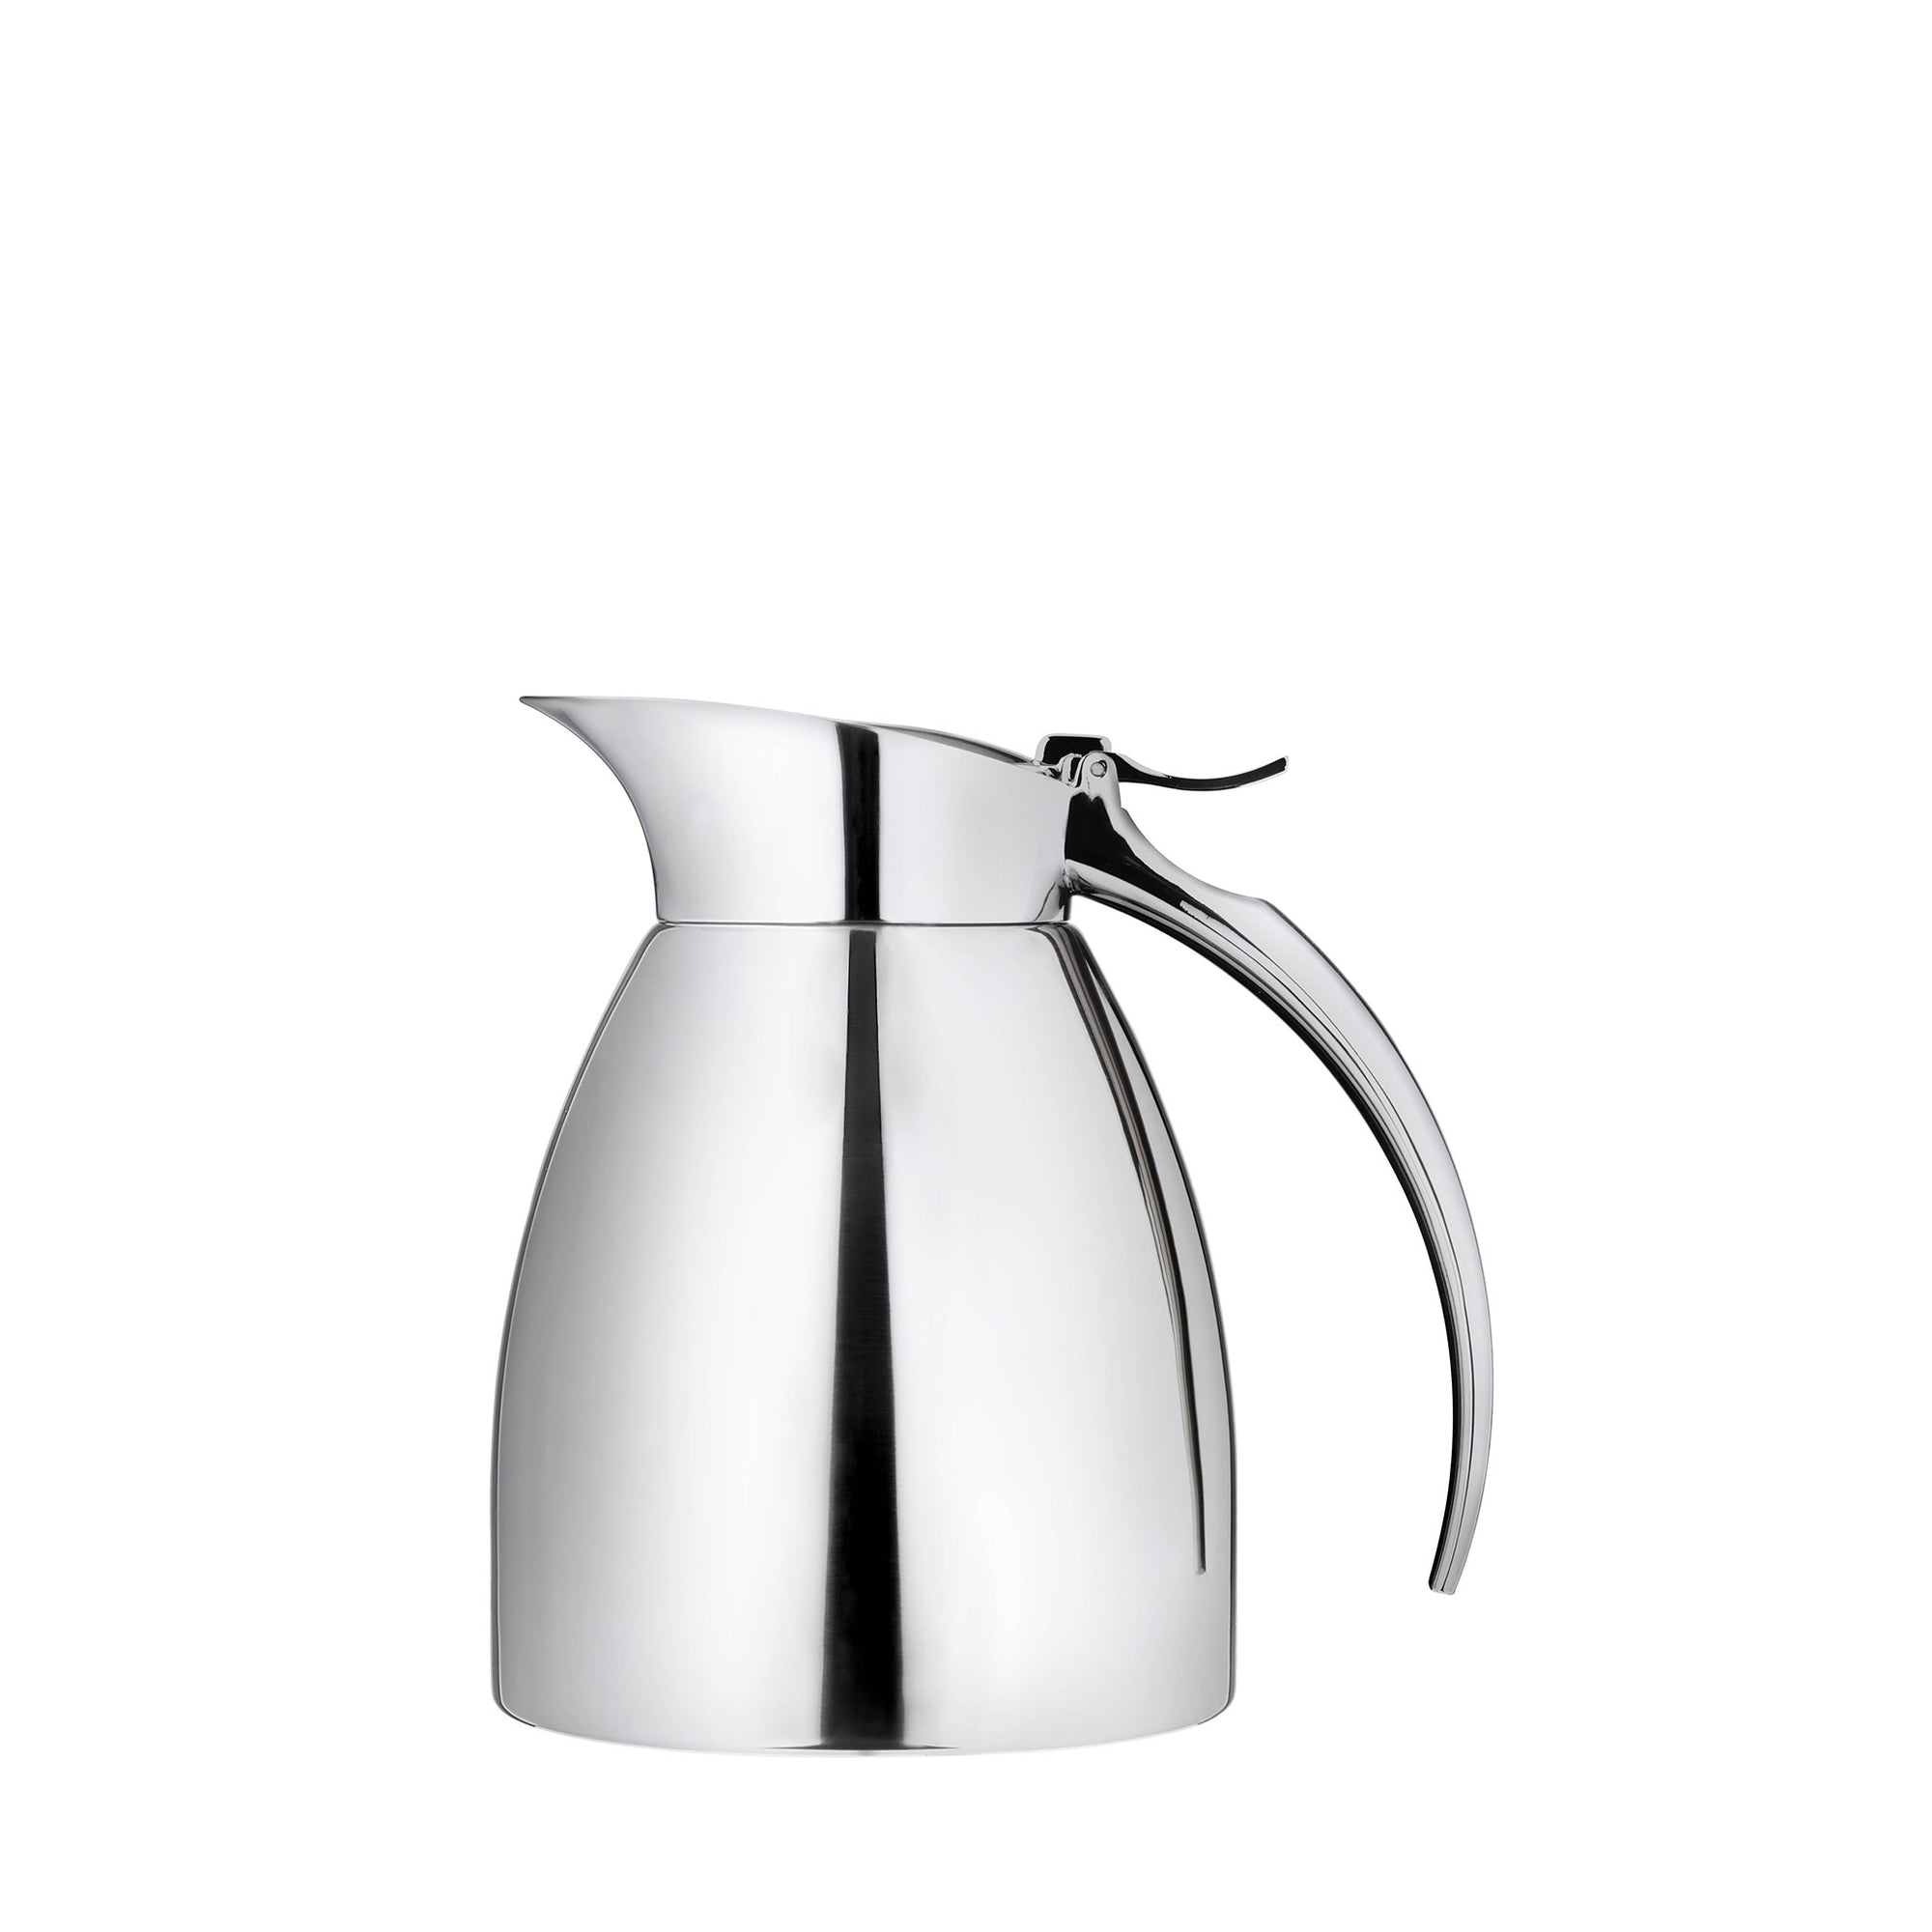 Stainless Steel Vacuum Jug 300ml - Espresso Gear